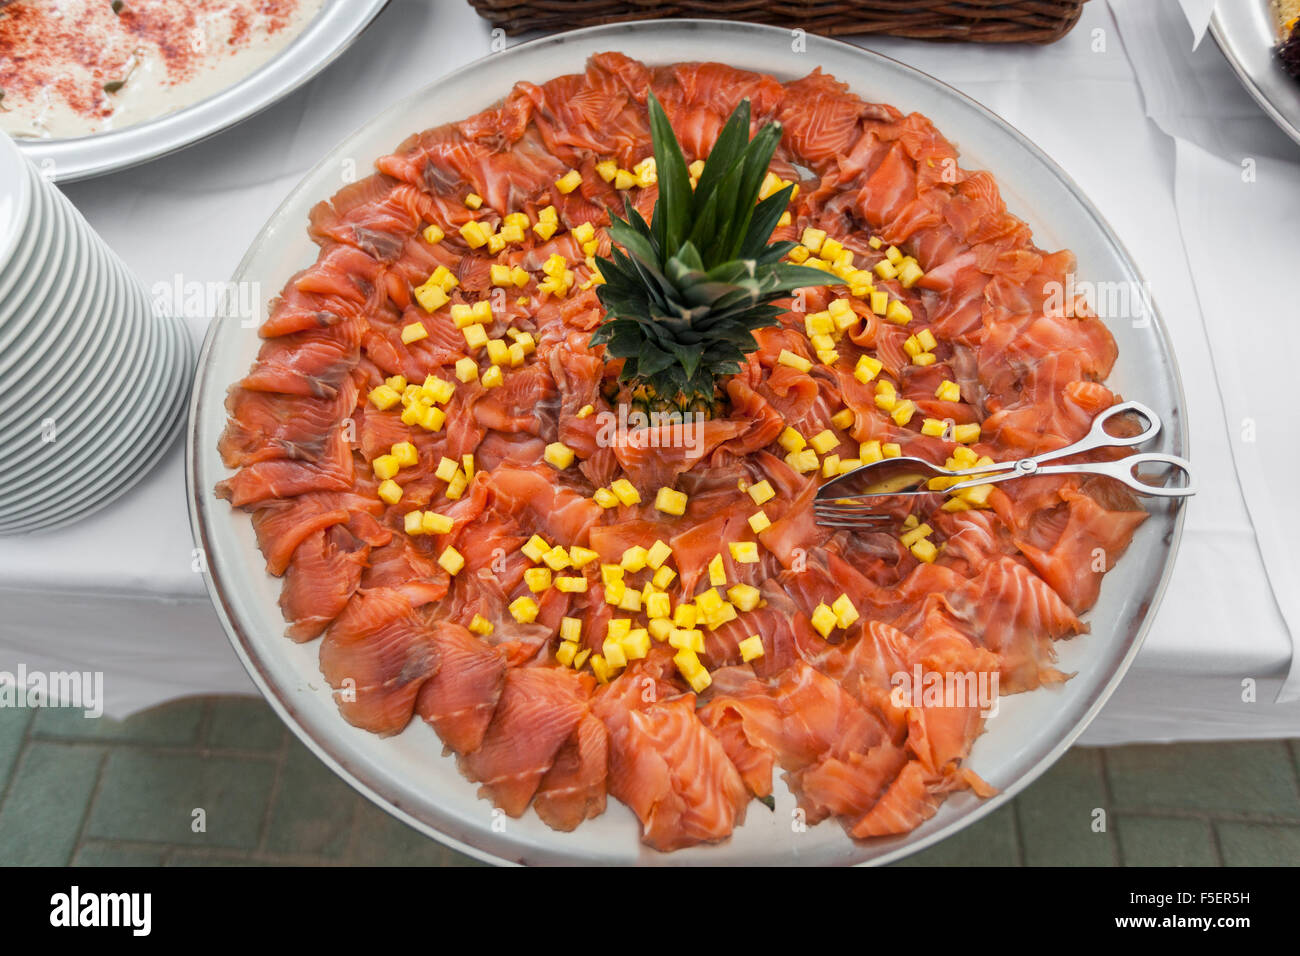 Ananas Buffet party outdoors, tasty appetizer, plate of salmon with ananas stock